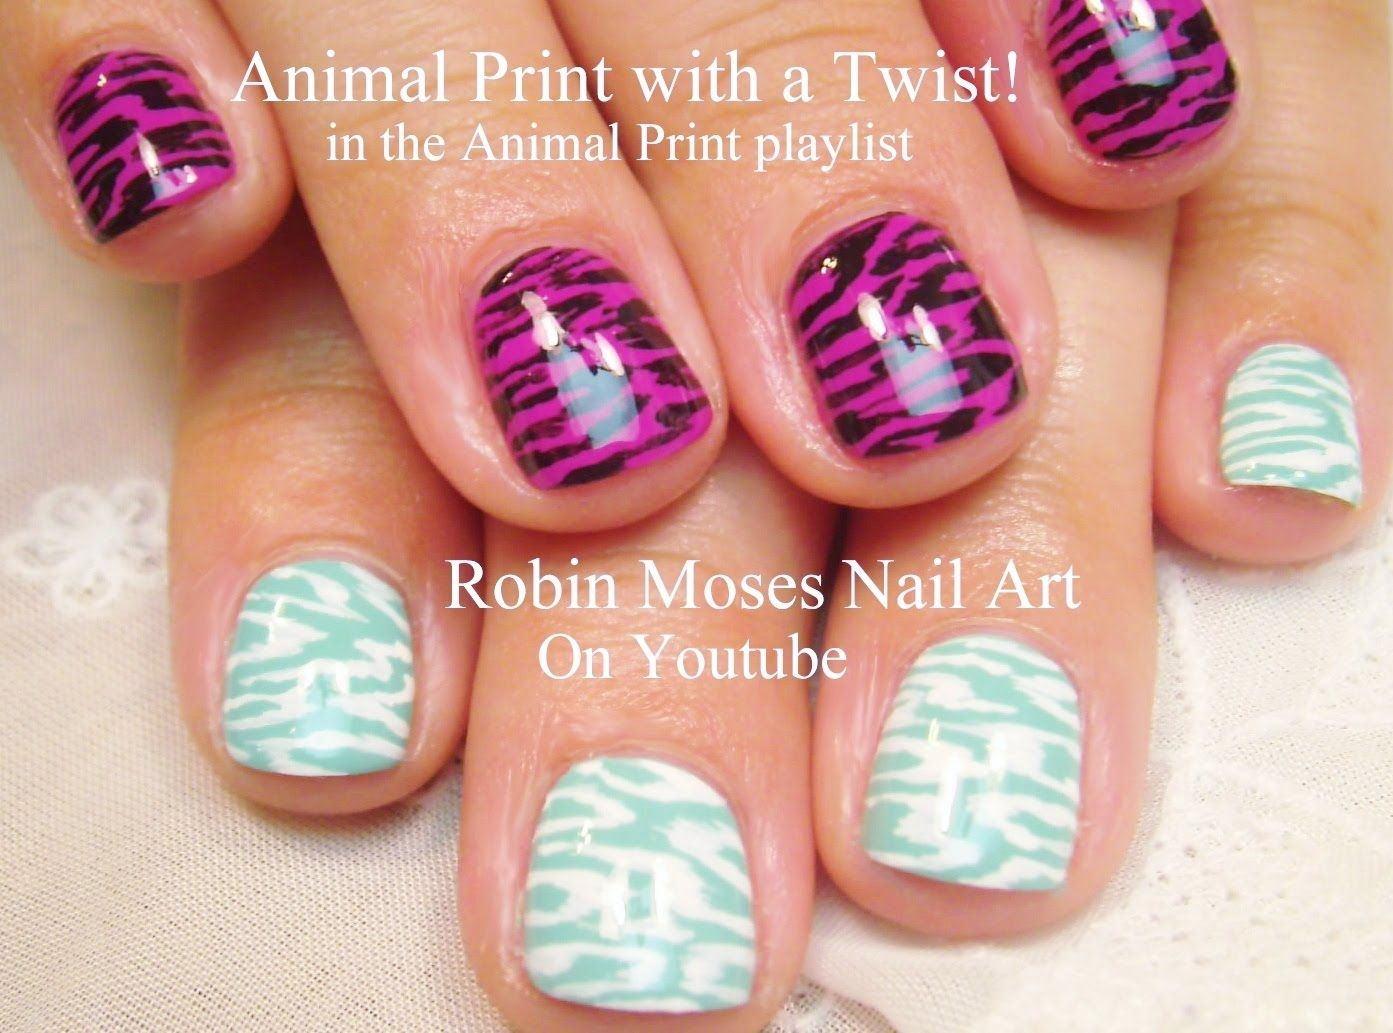 easy at home nail designs for short nails. Easy Nail Art for Short Nails  2 DIY Animal Print designs CUTE